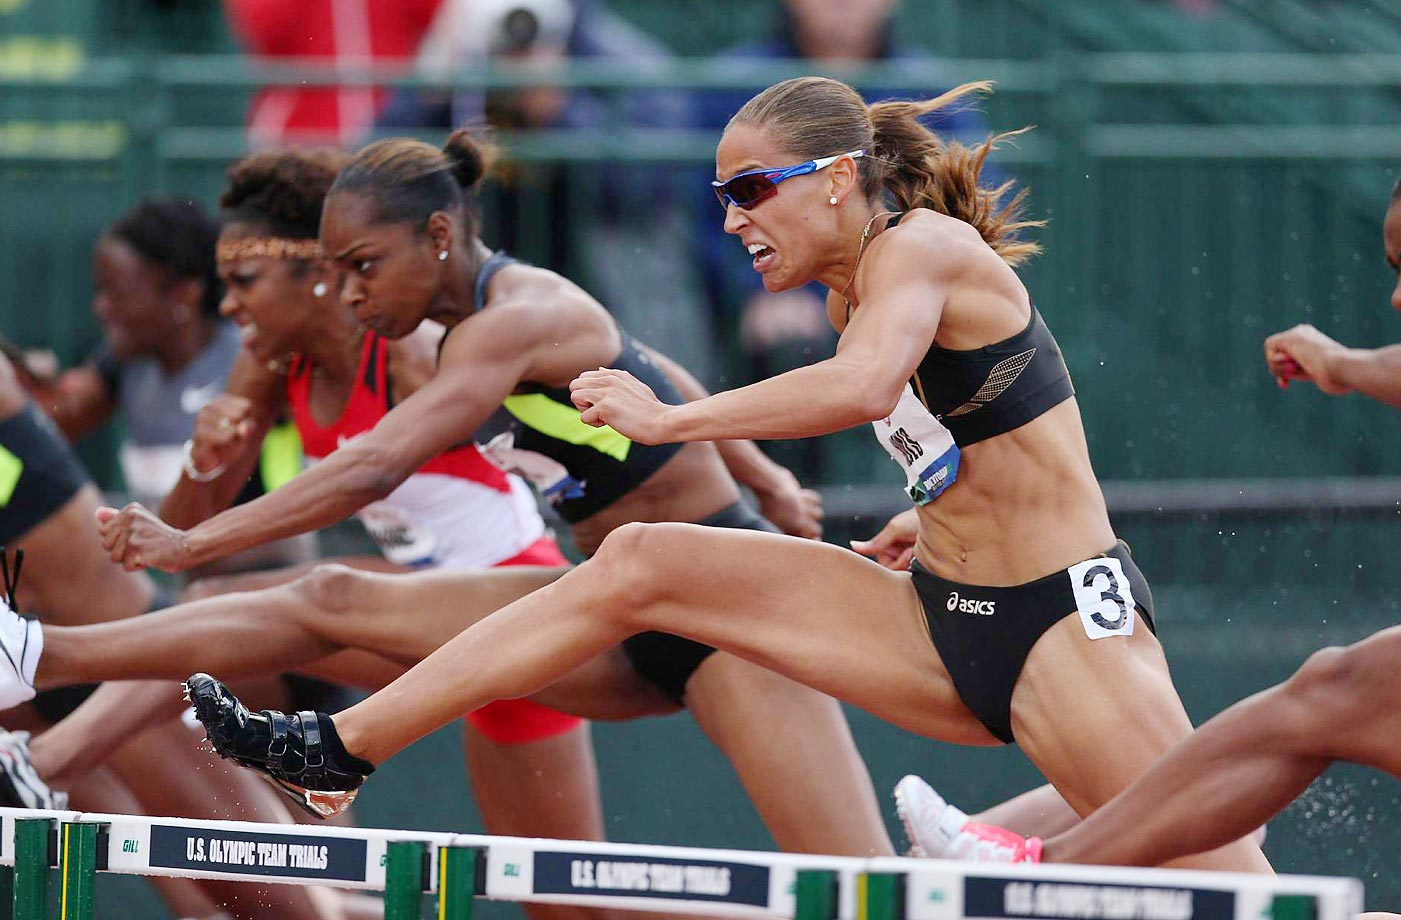 Michelle Perry and Lolo Jones battle in the 100-meter hurdles semifinals at the 2012 Olympic trials.